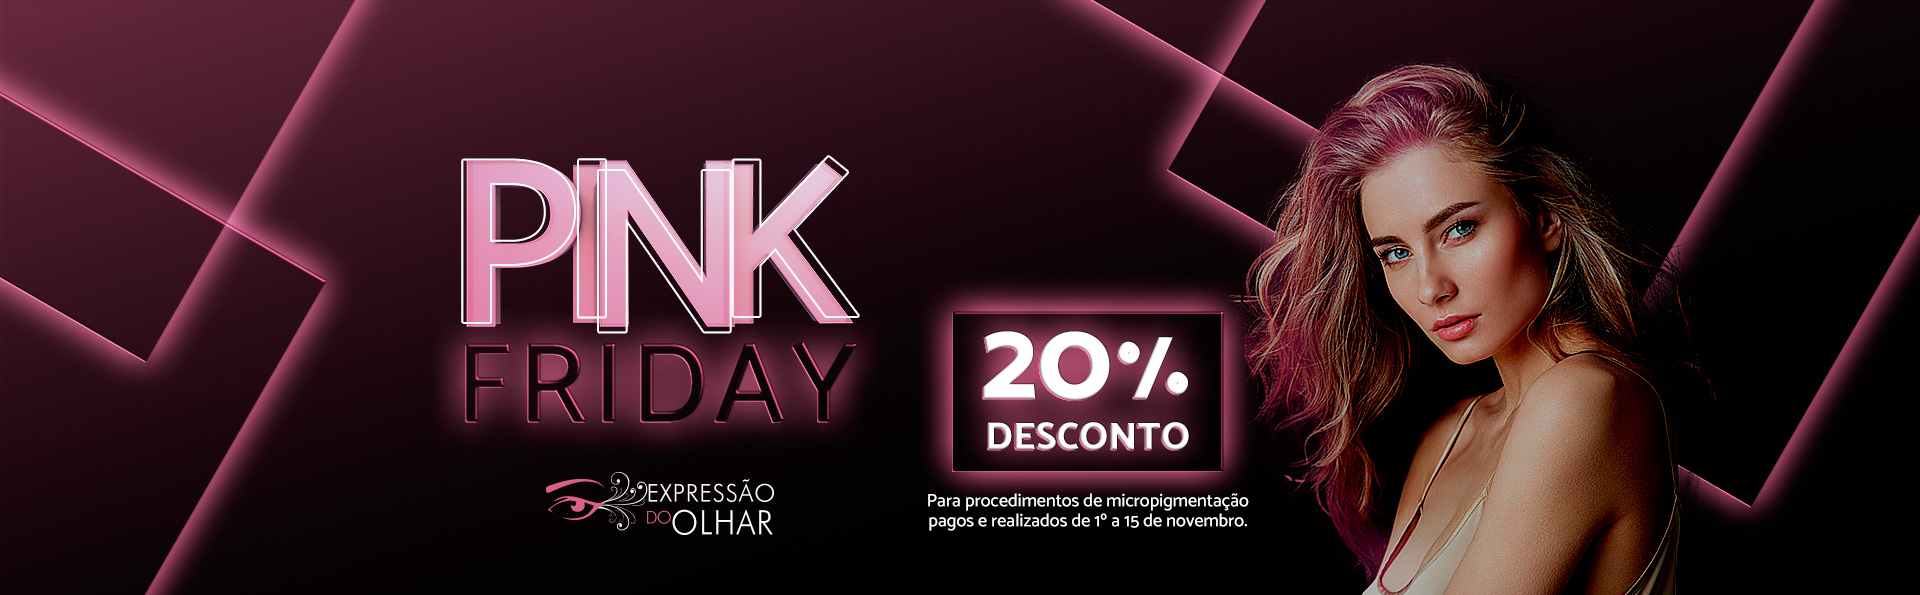 banner-site-pink-friday-expressao-do-olhar